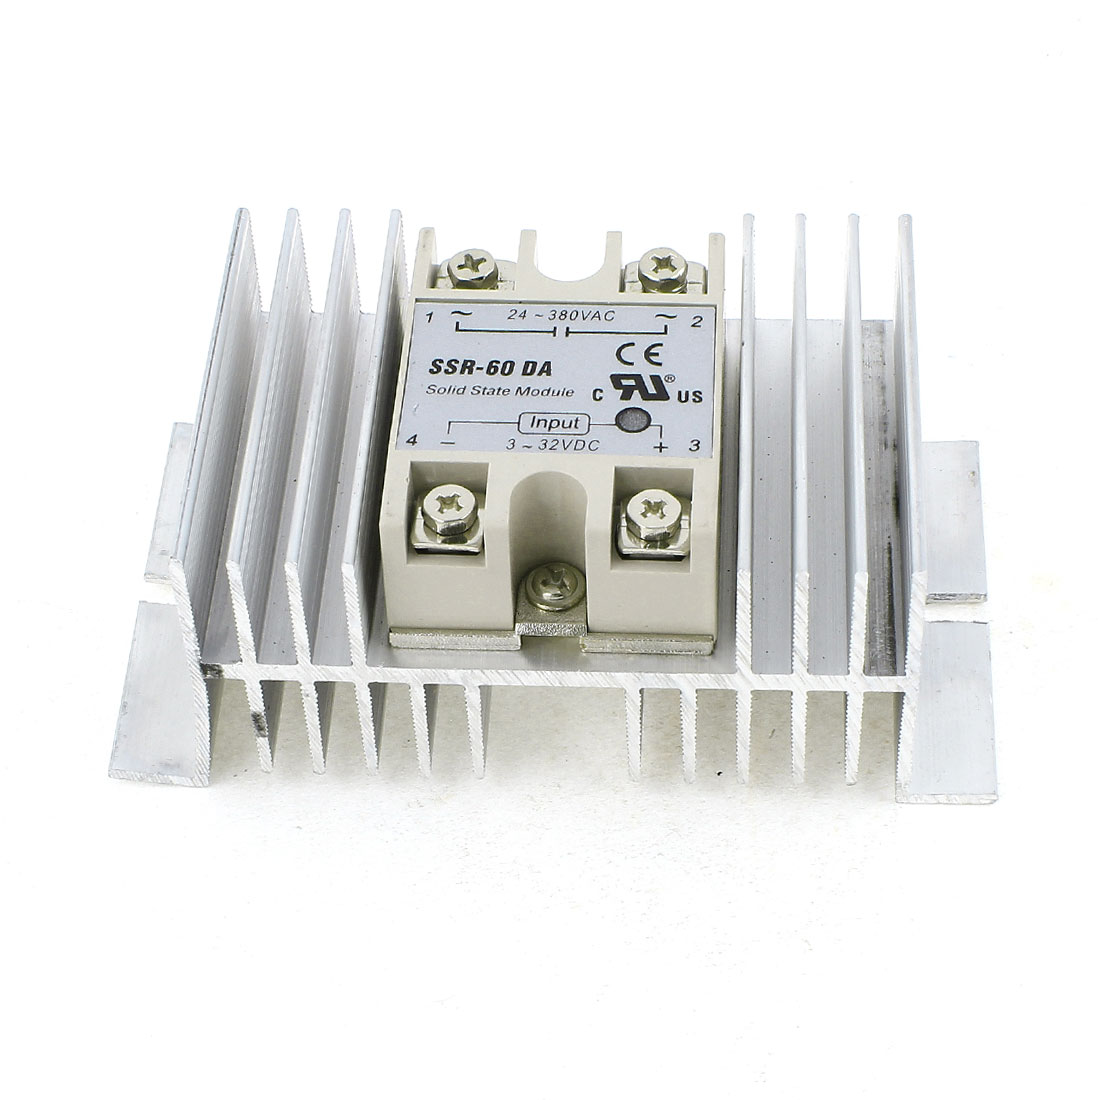 SSR-60DA DC 3-32V Control Silver Tone Aluminum Heatsink 4 Screw Terminal Single Phase SSR Solid State Relay